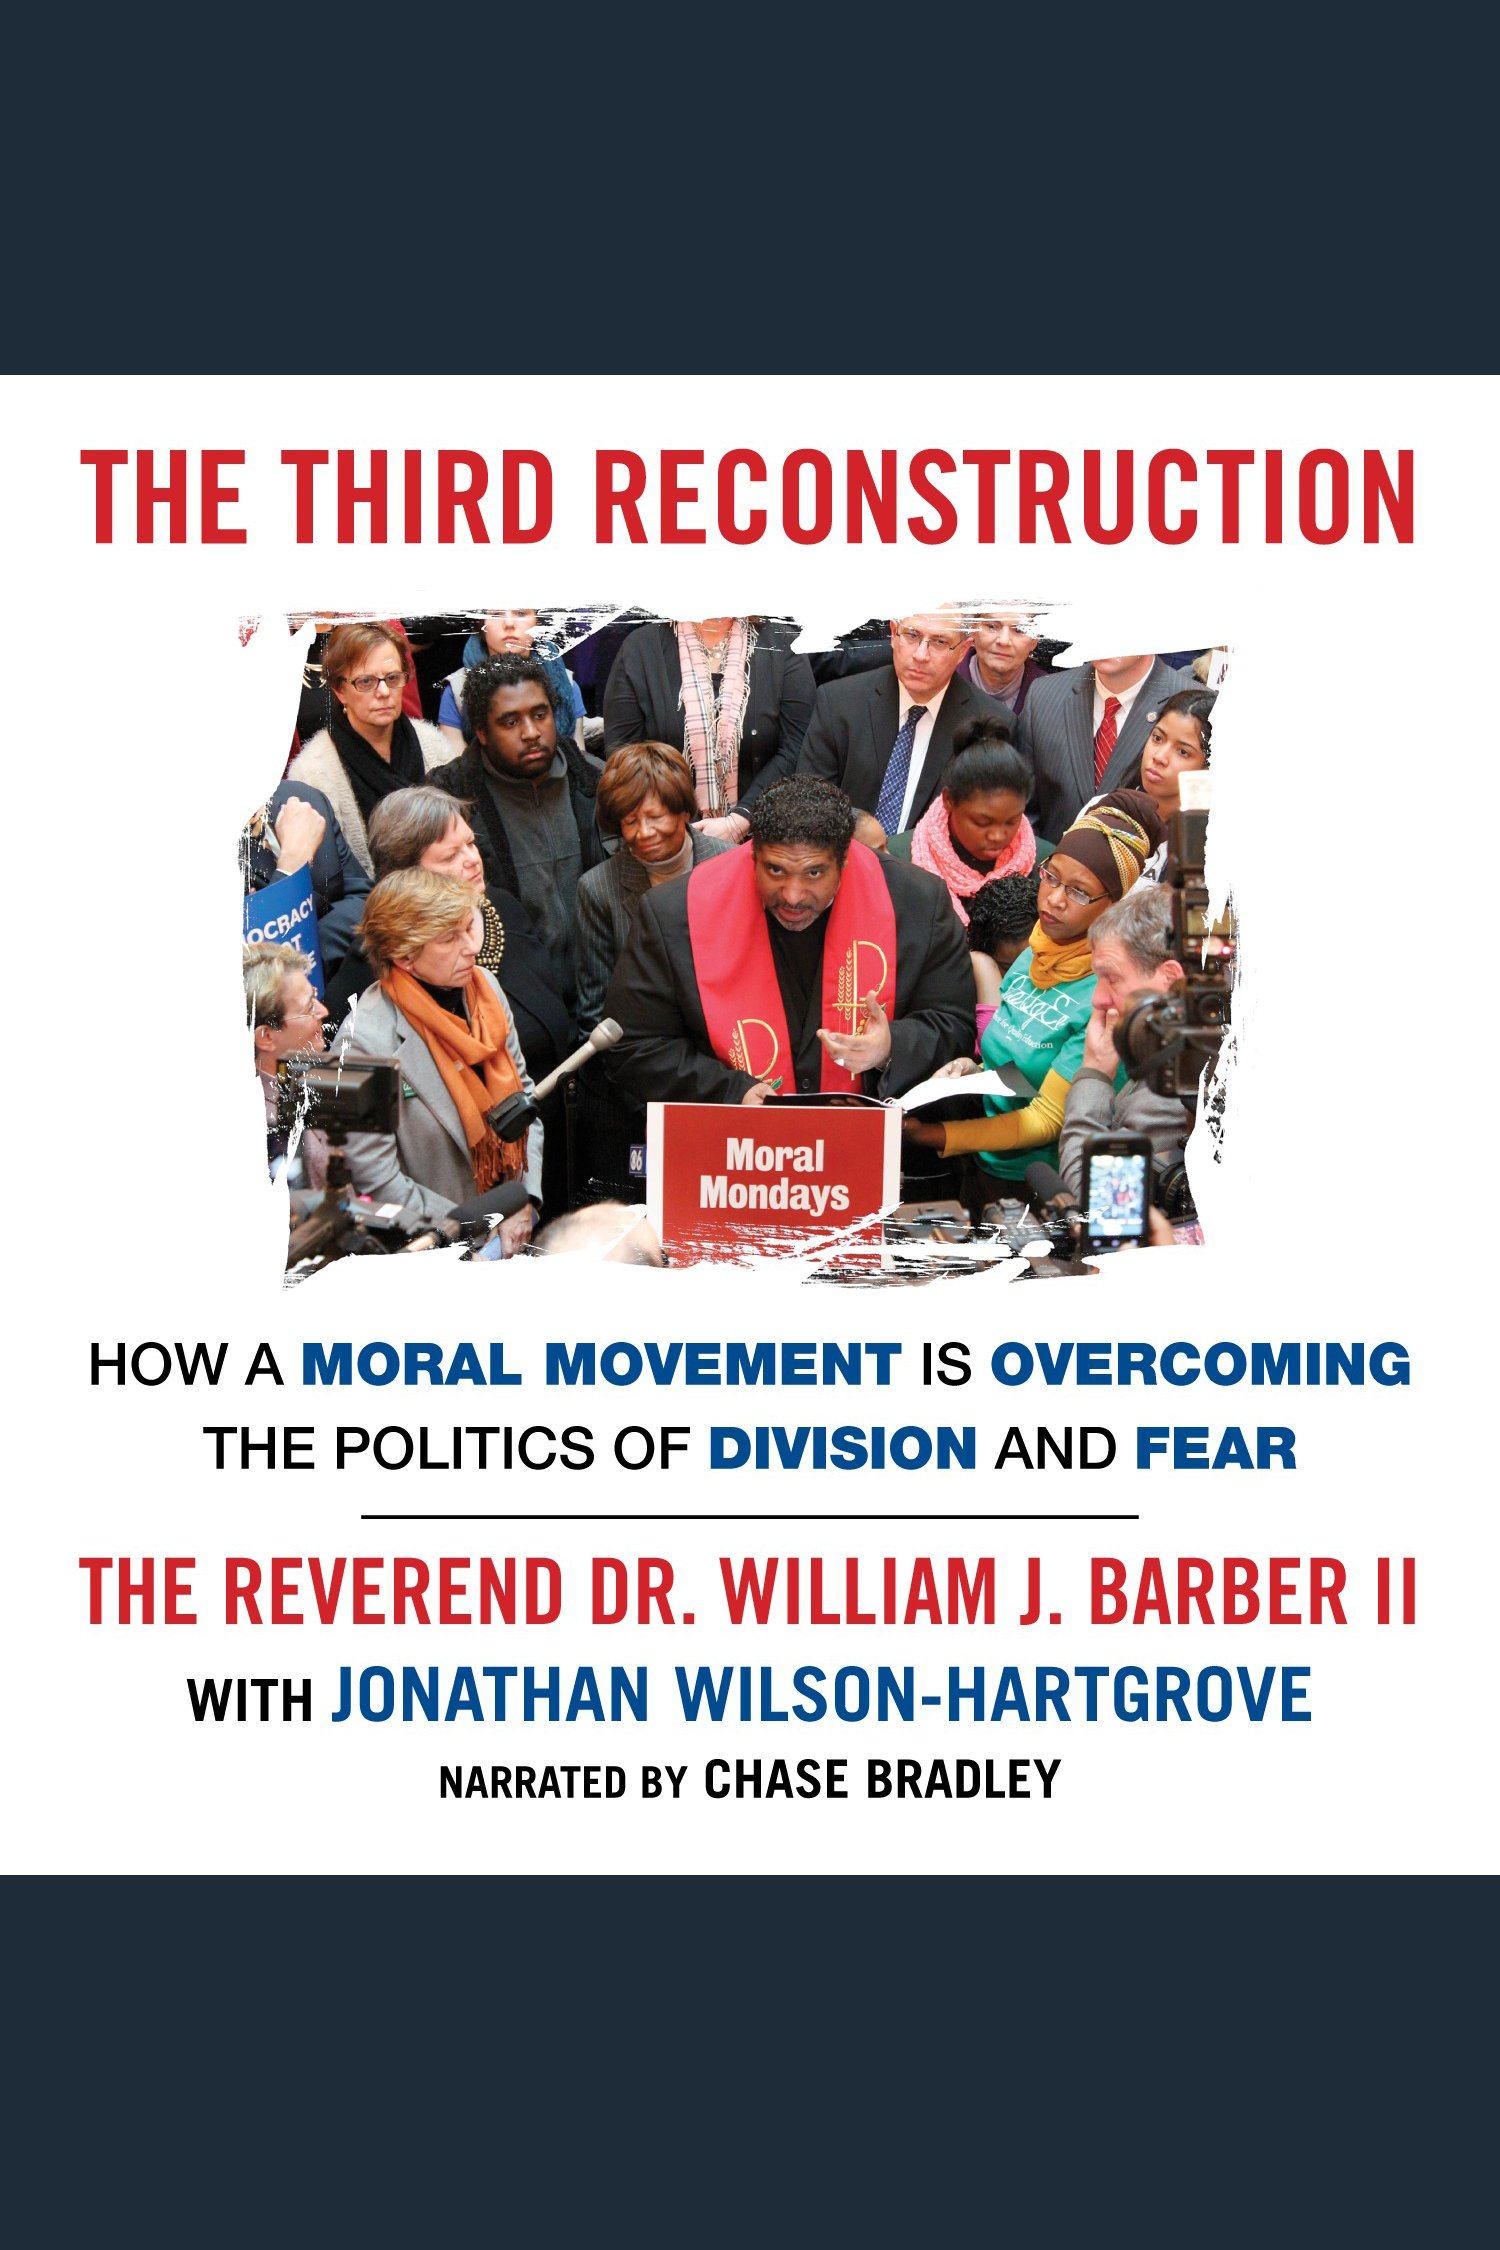 Third Reconstruction, The How a Moral Movement Is Overcoming the Politics of Division and Fear